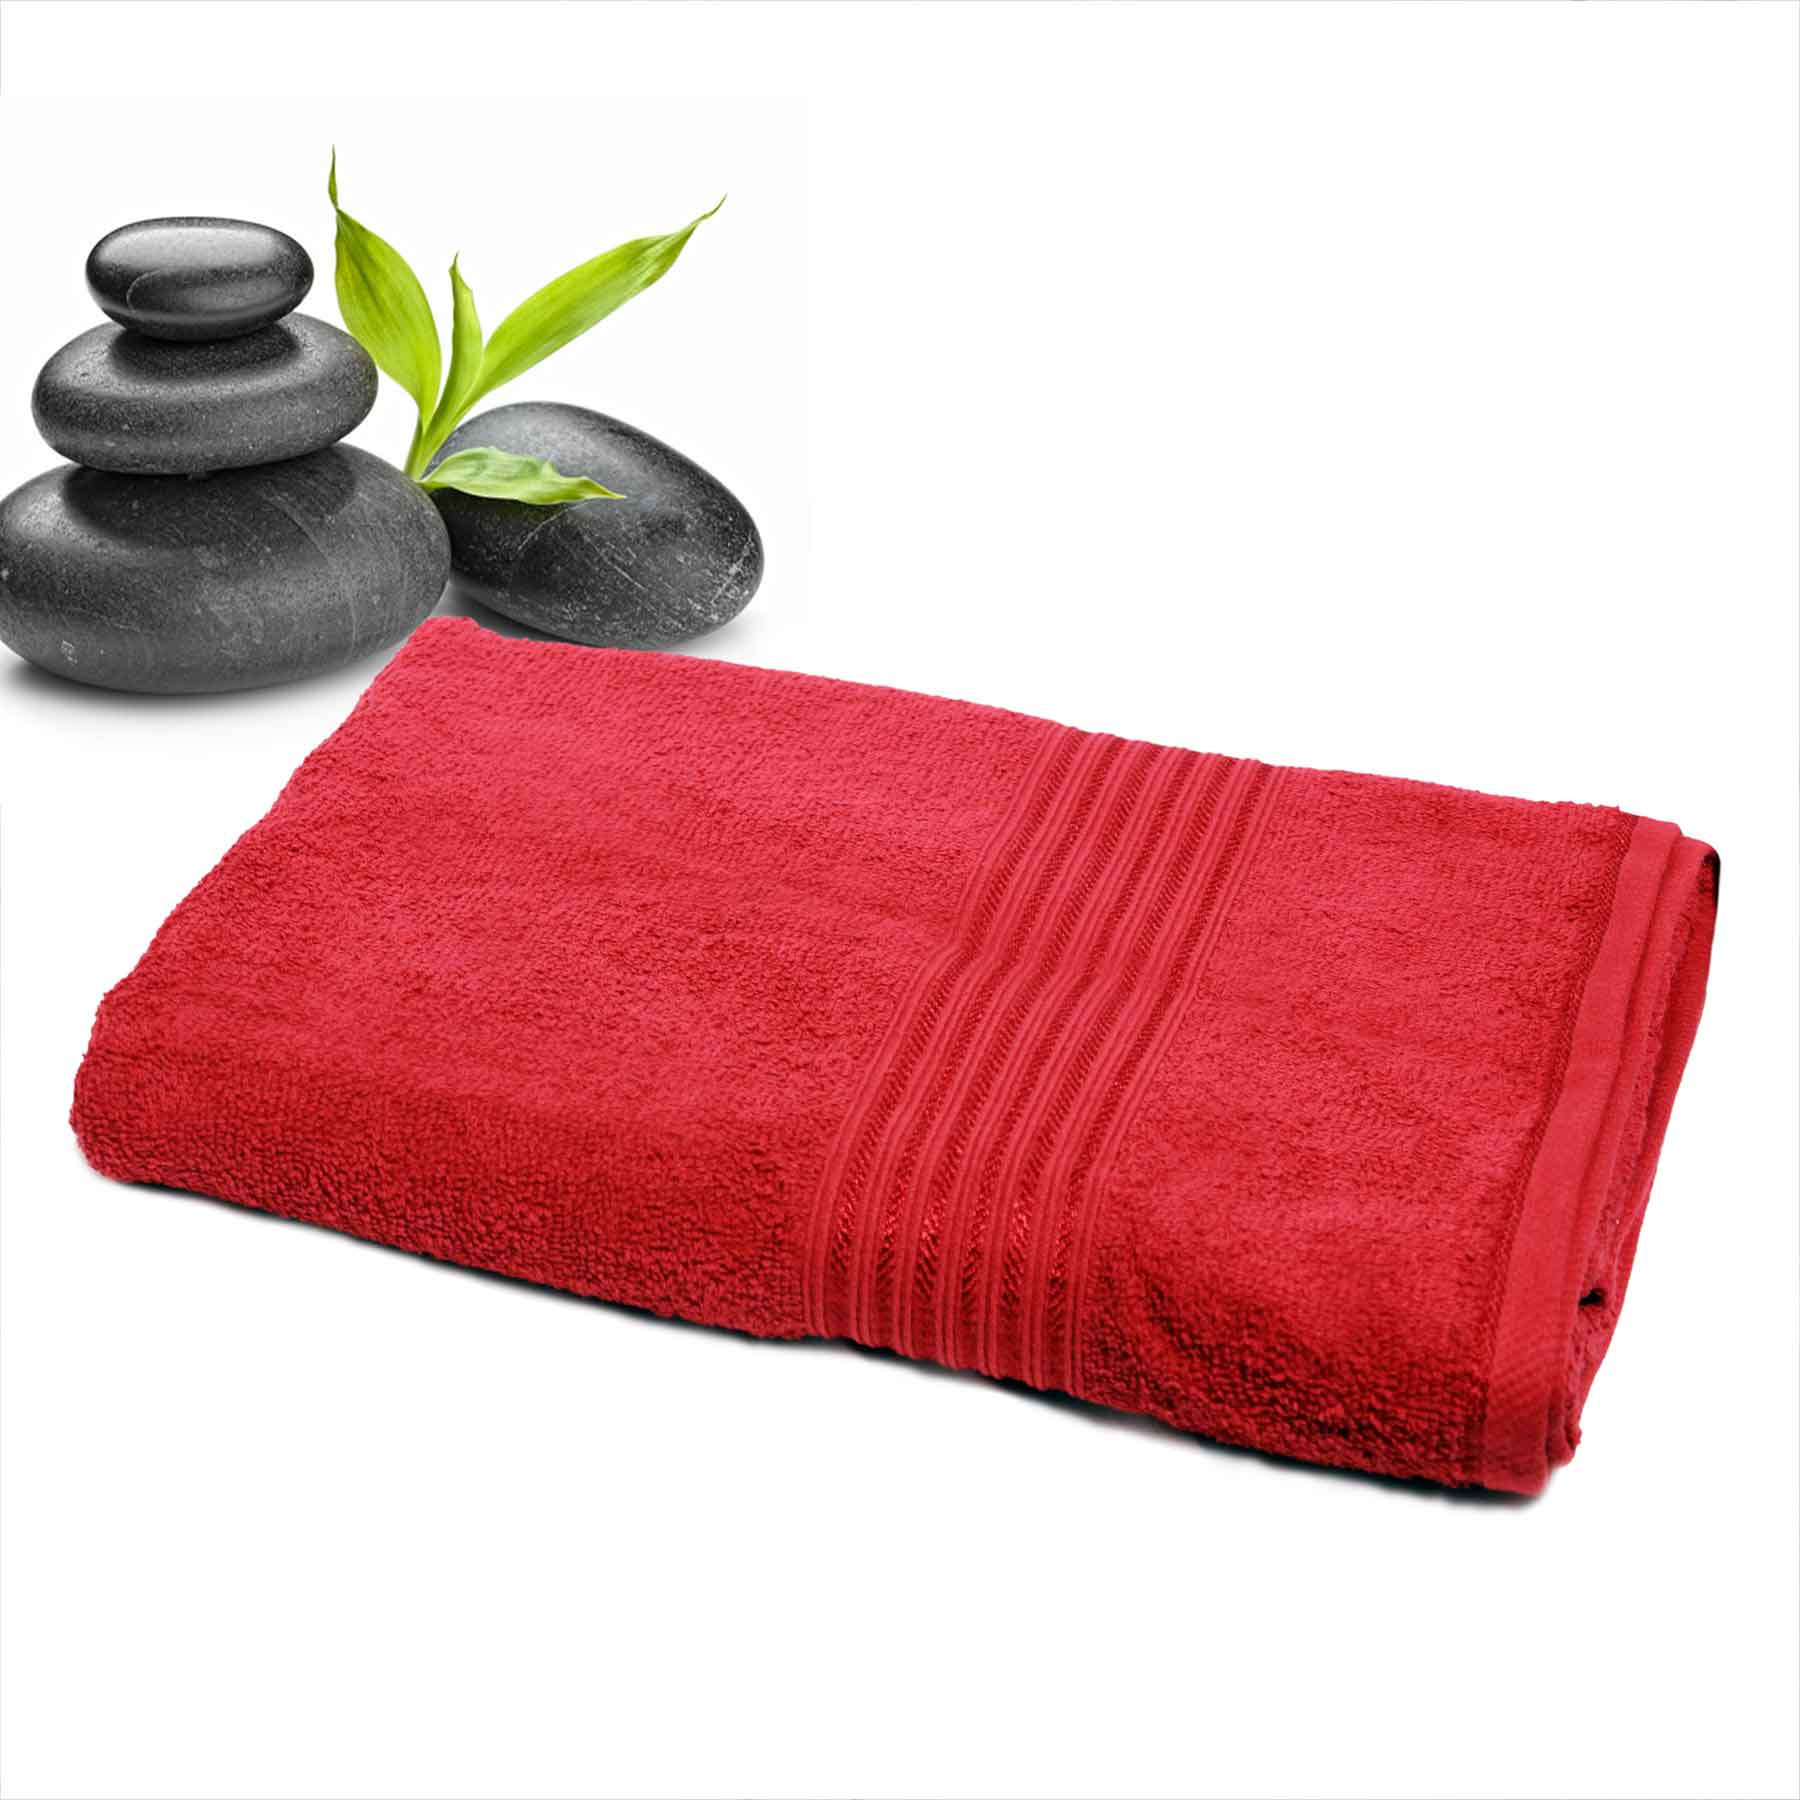 DIVINE CASA Single Cotton Bath Towel Red (Ladies)